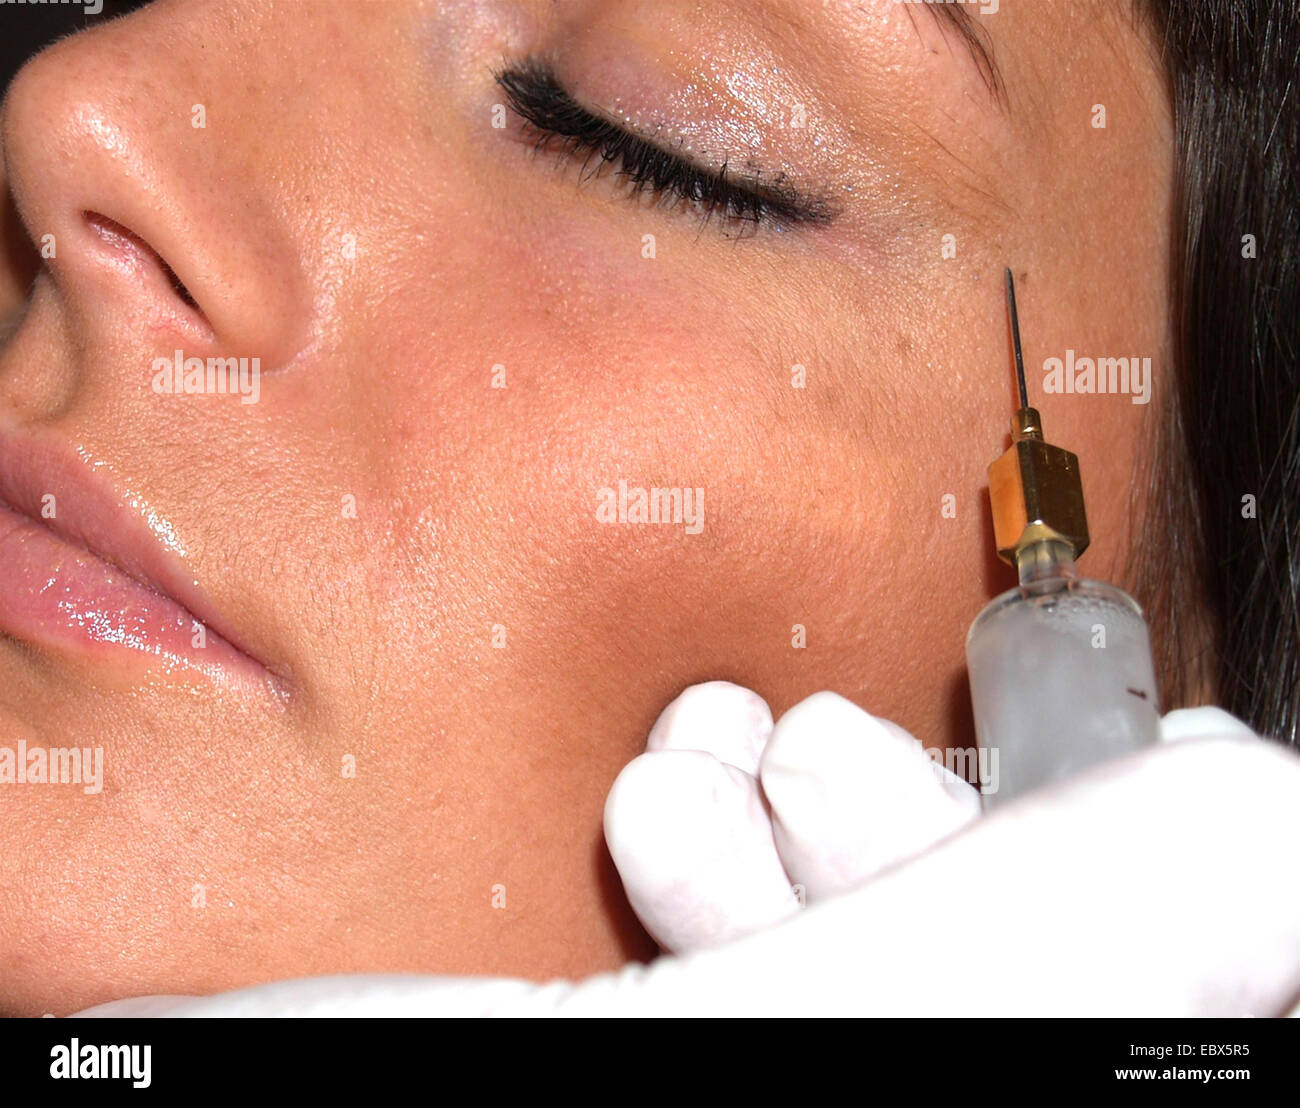 young woman getting a botox injection into the temple - Stock Image